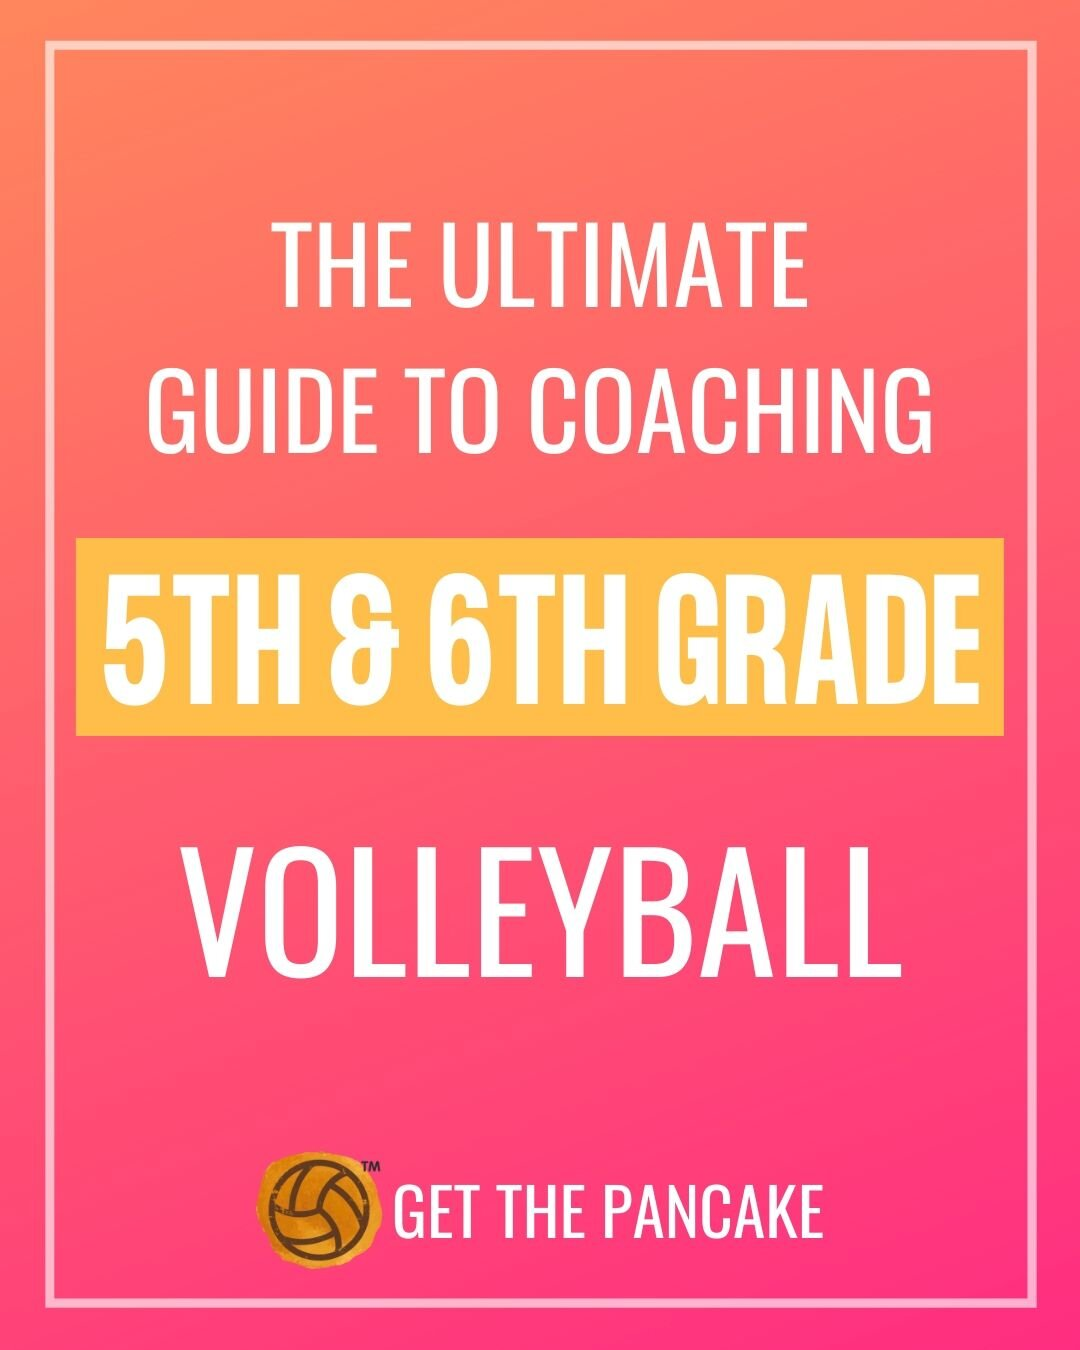 The Ultimate Guide To Coaching 5th And 6th Grade Volleyball